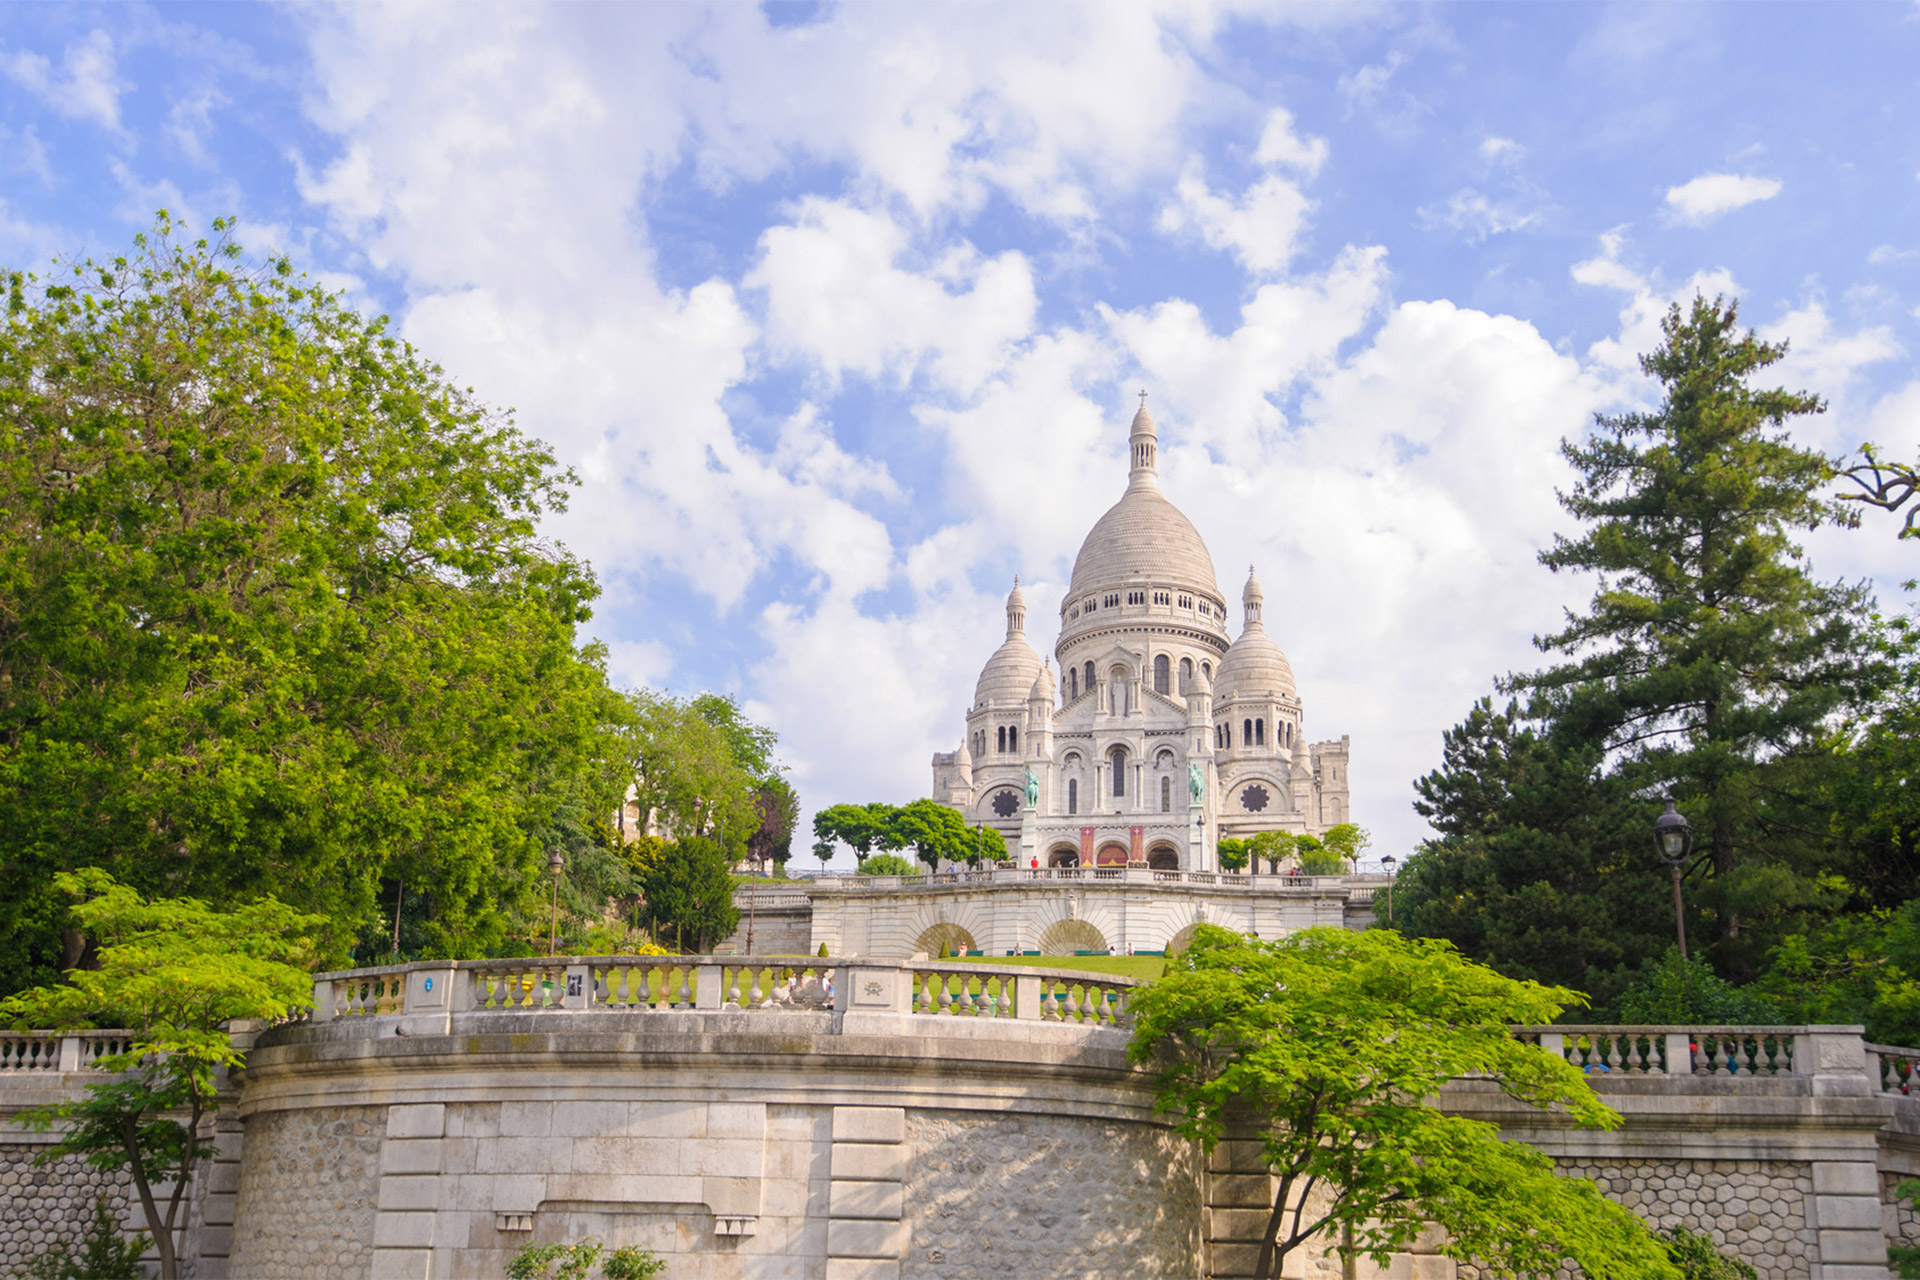 Stroll over to the Sacré Coeur in Paris